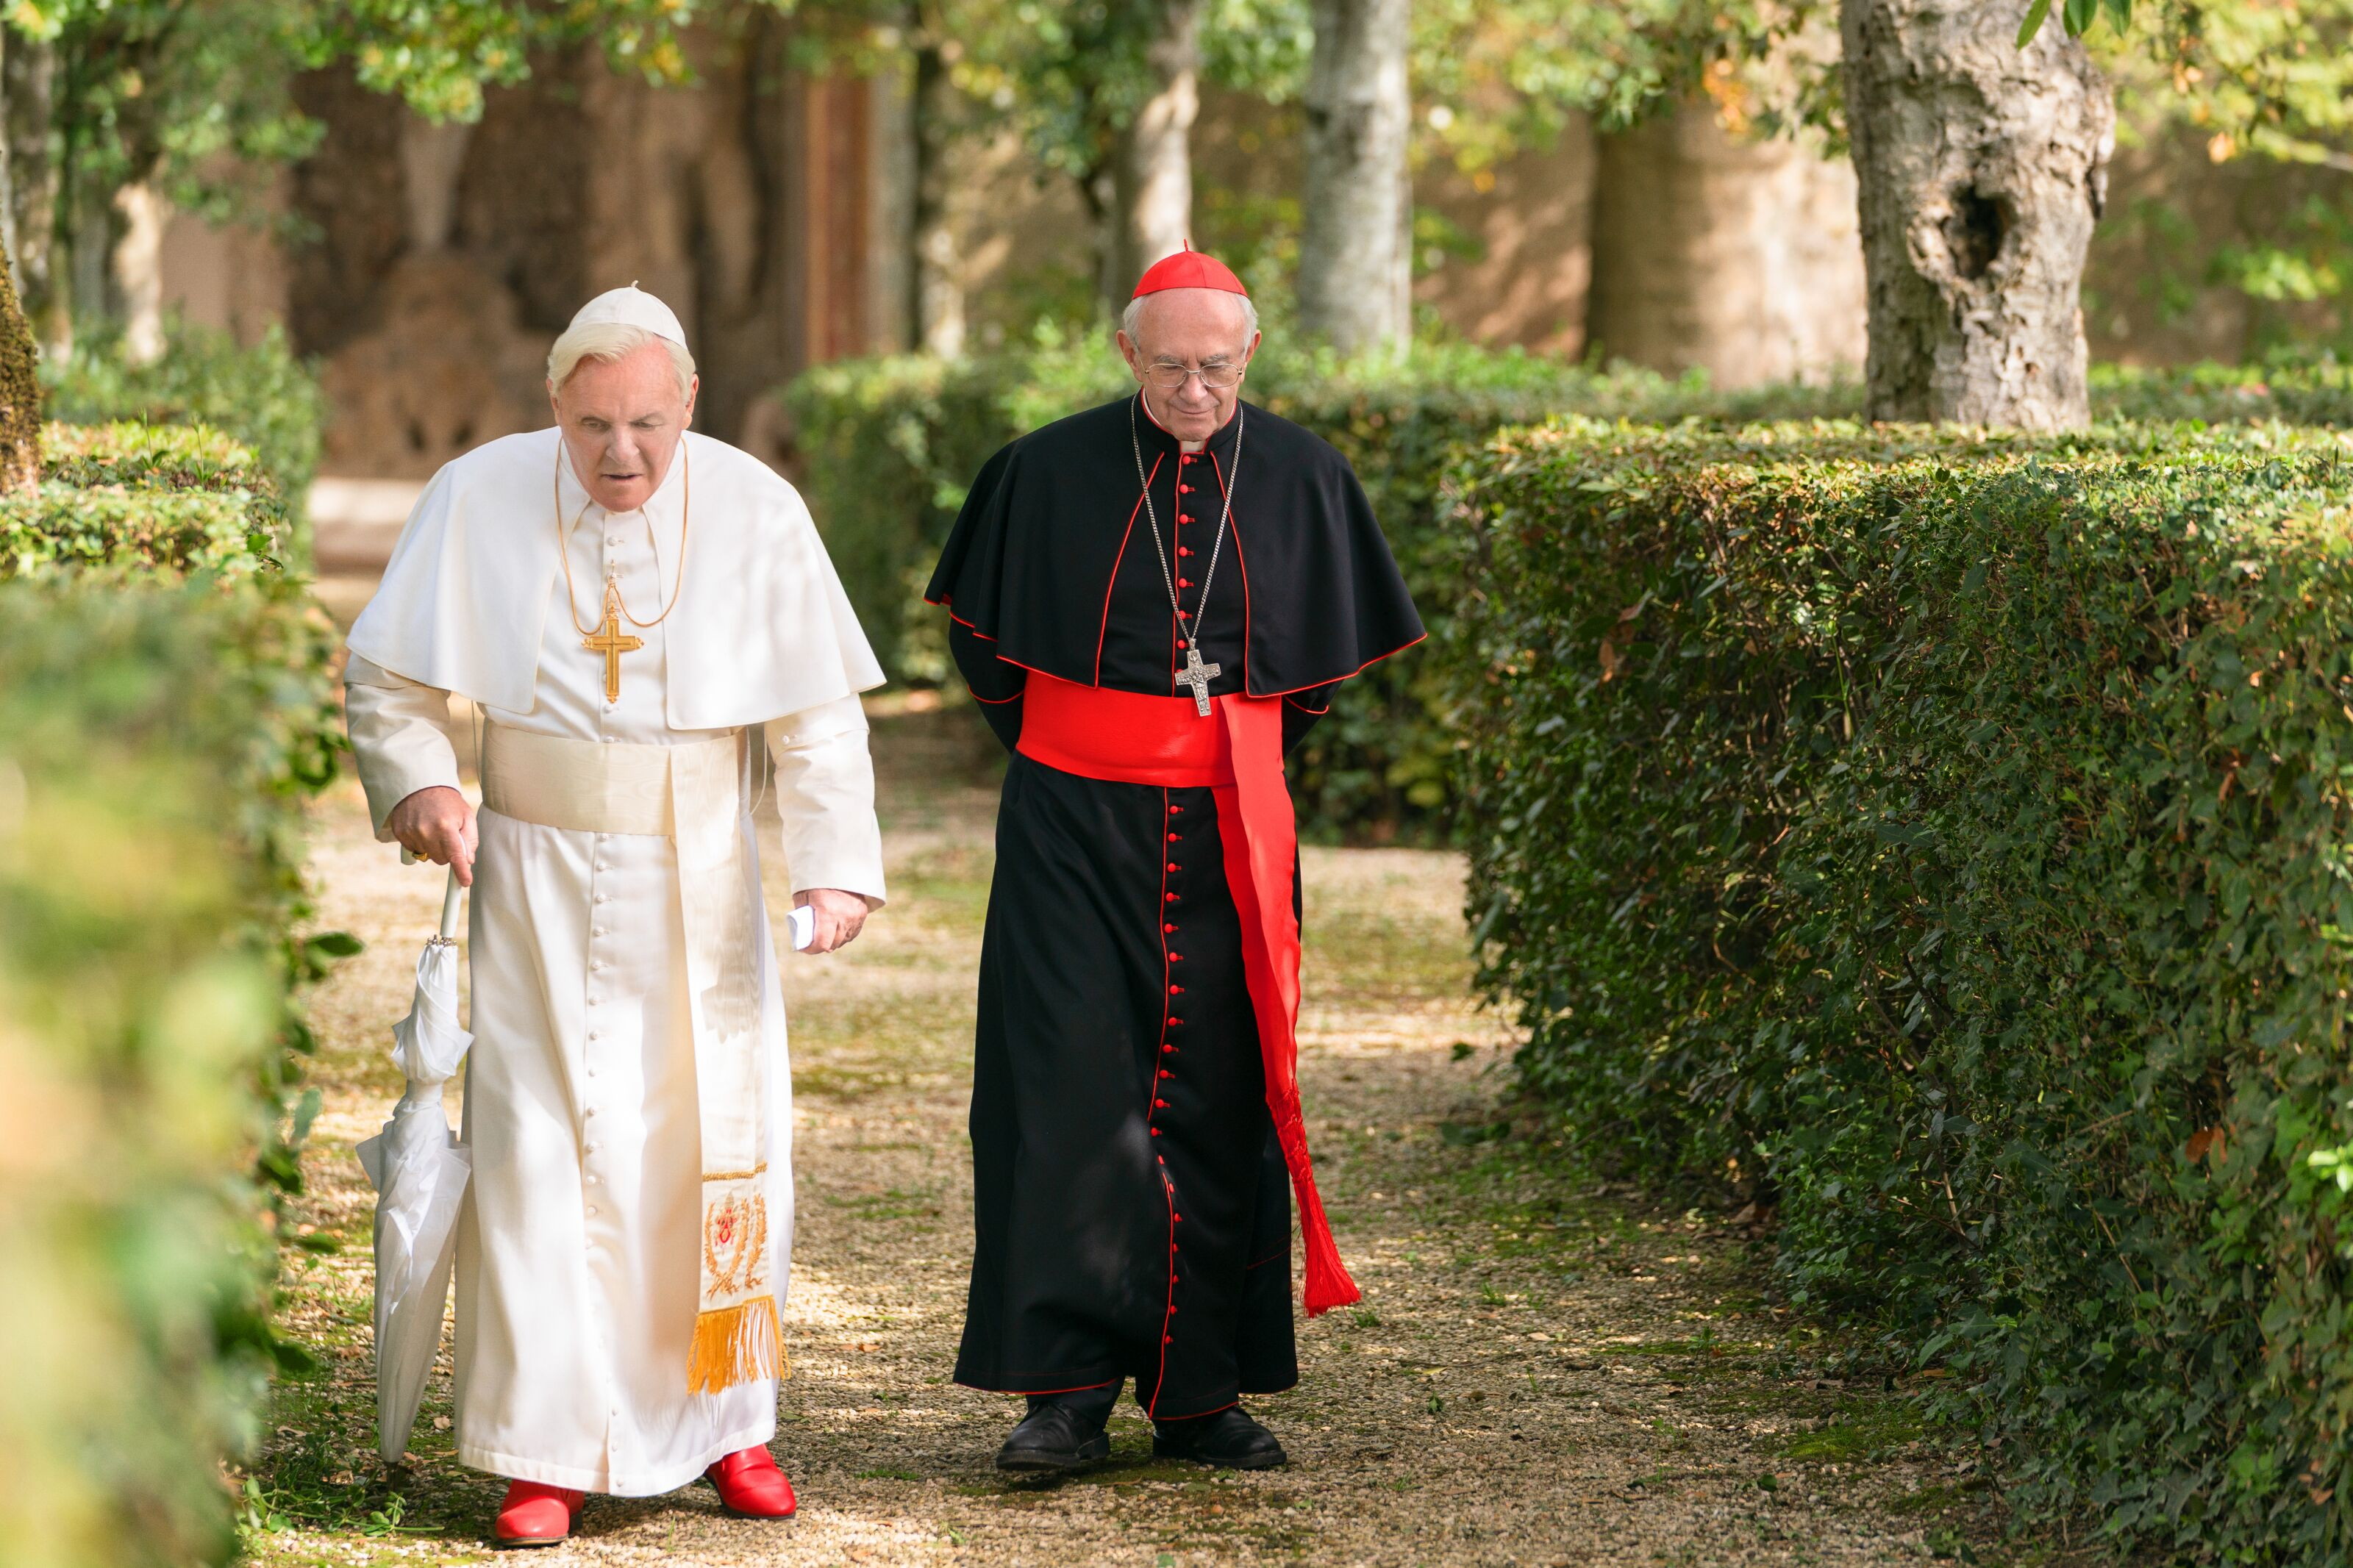 The Two Popes: Oscar-worthy performances and a powerful message